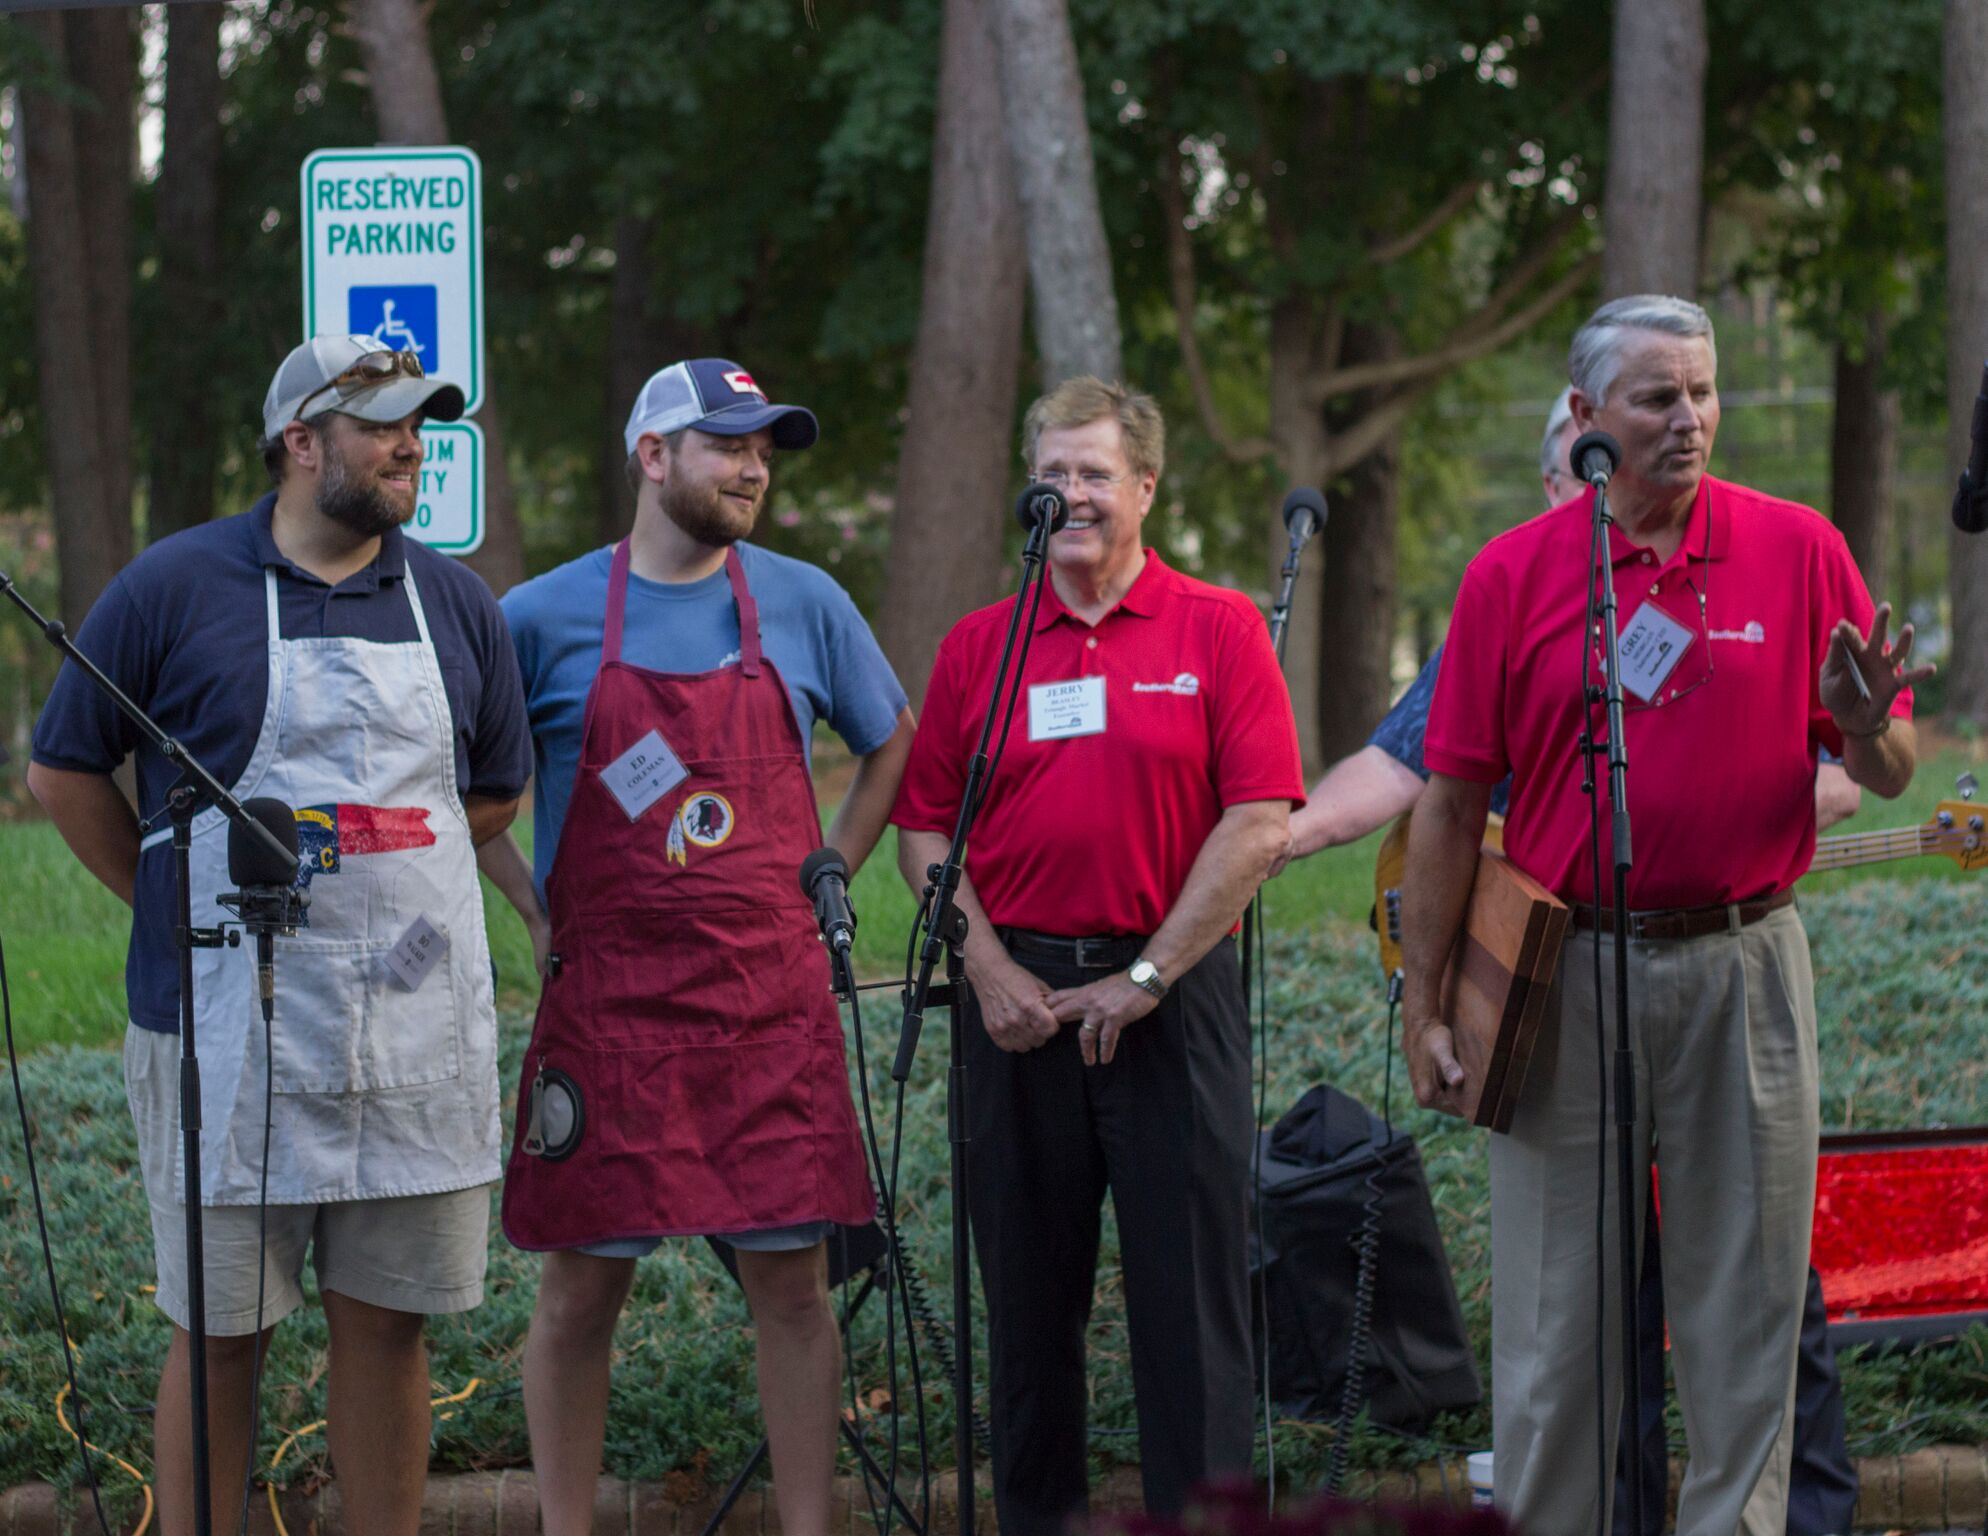 Southern Bank Raleigh Barbecue 2017